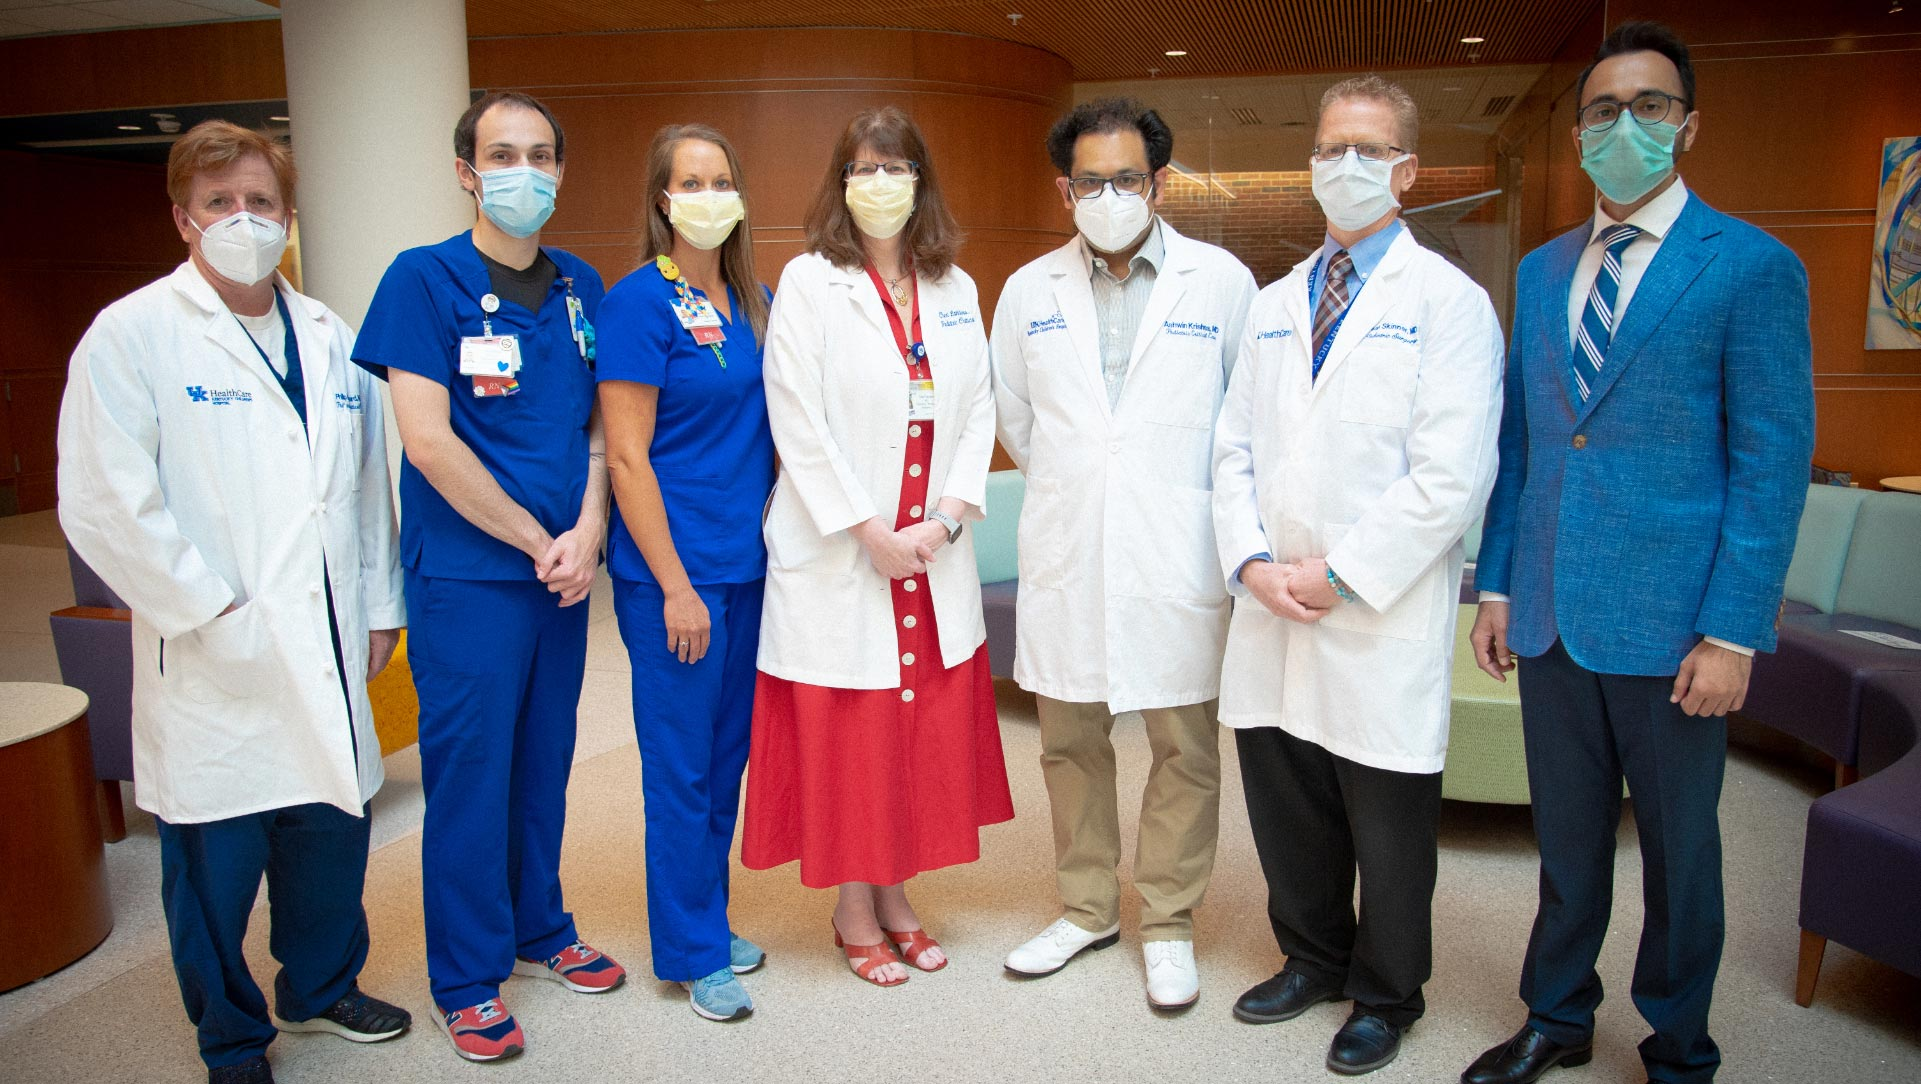 A group of doctors, nurses and therapists stand in a line formation for a portrait photo.